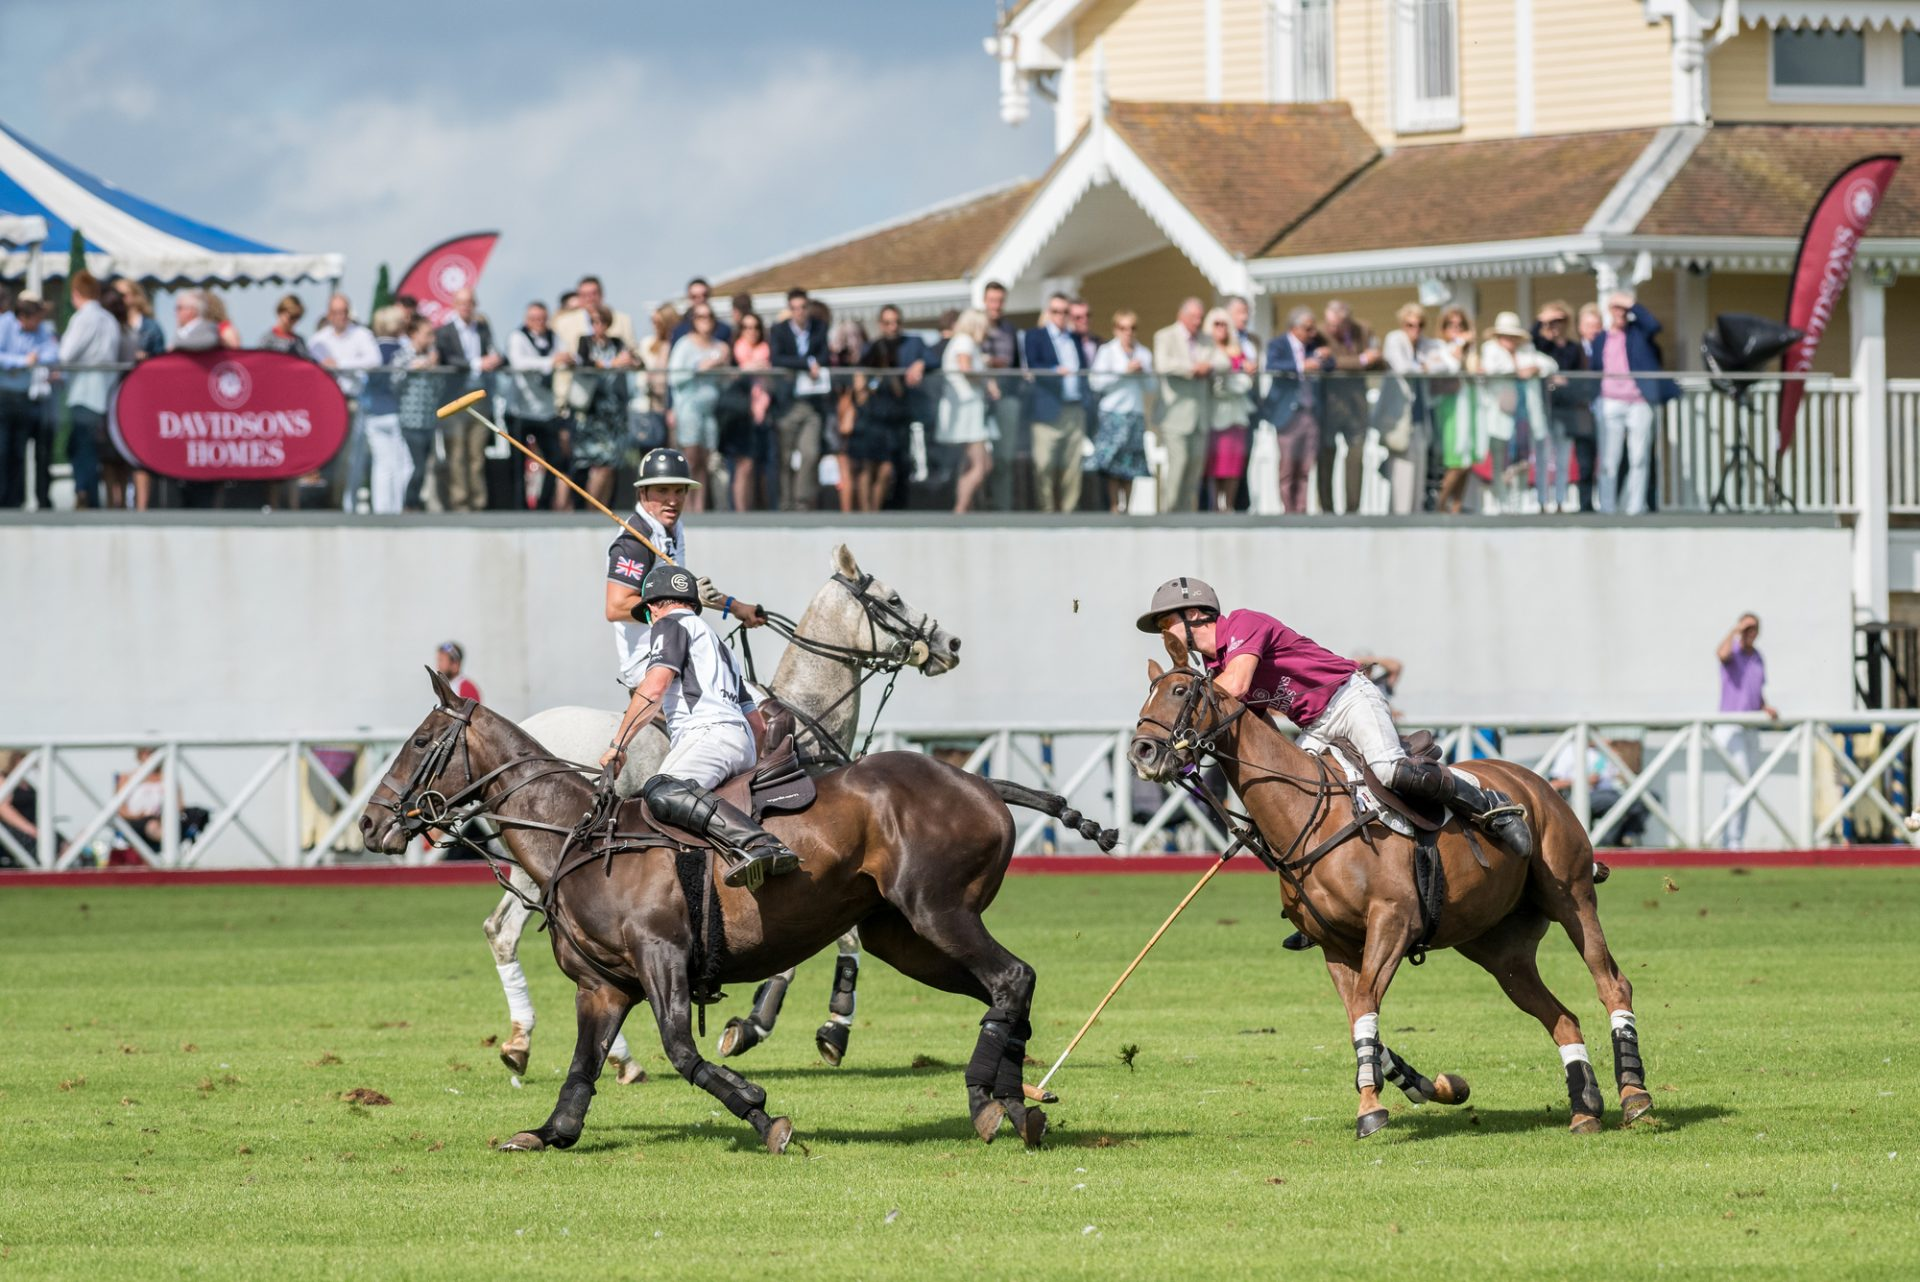 Watching Polo at Dallas Burston Polo Club